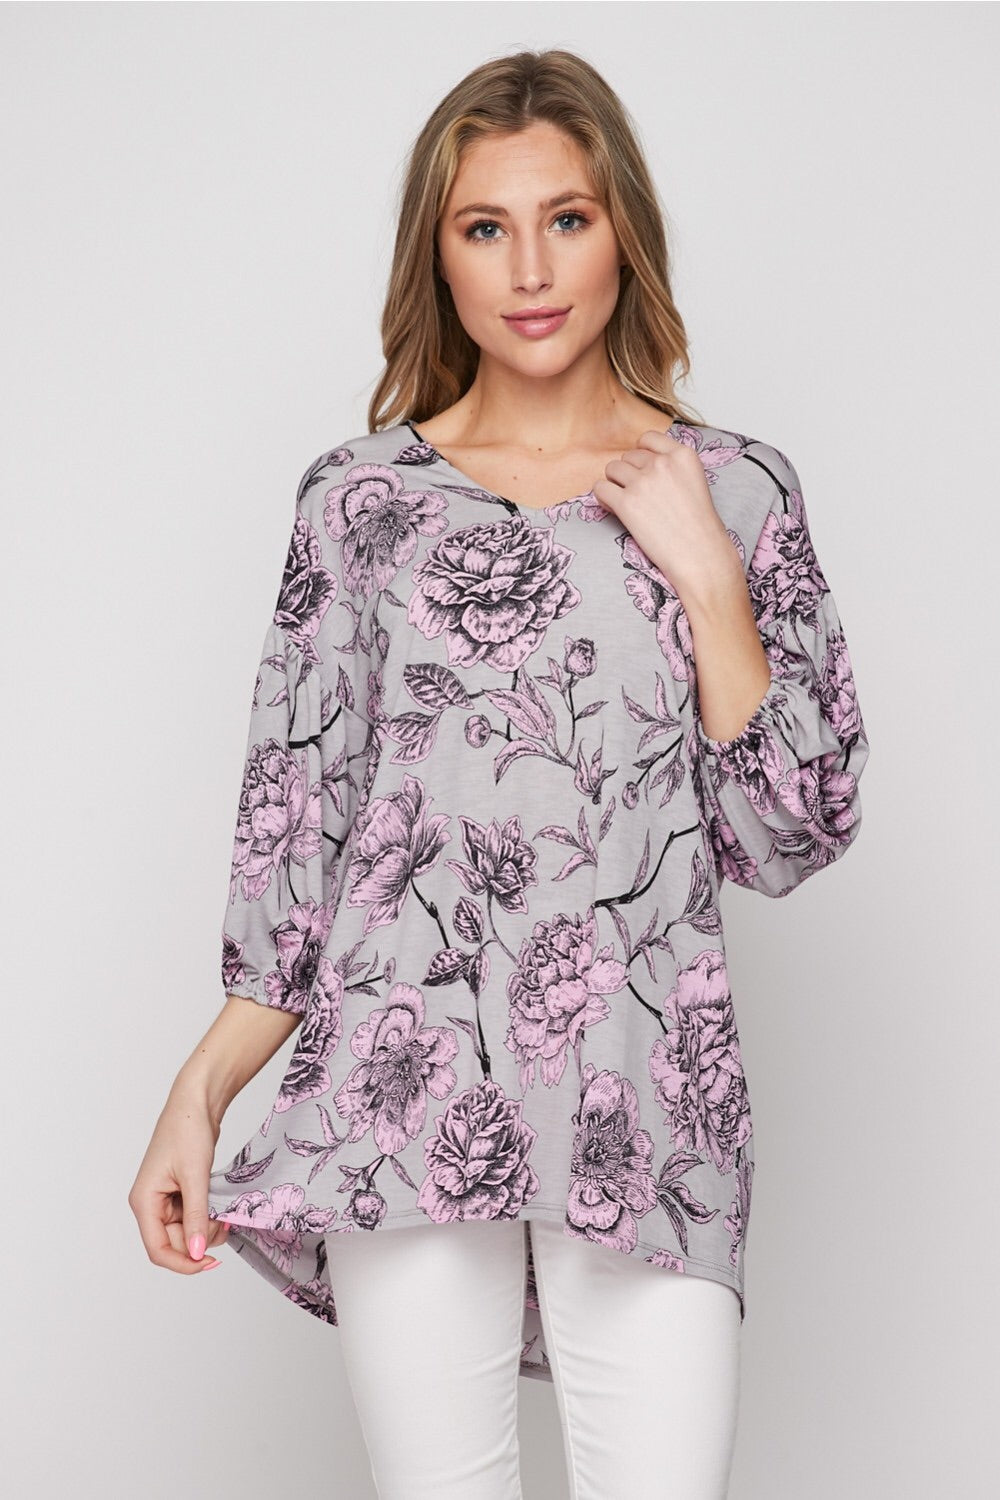 Veronica Floral Top in Lavender